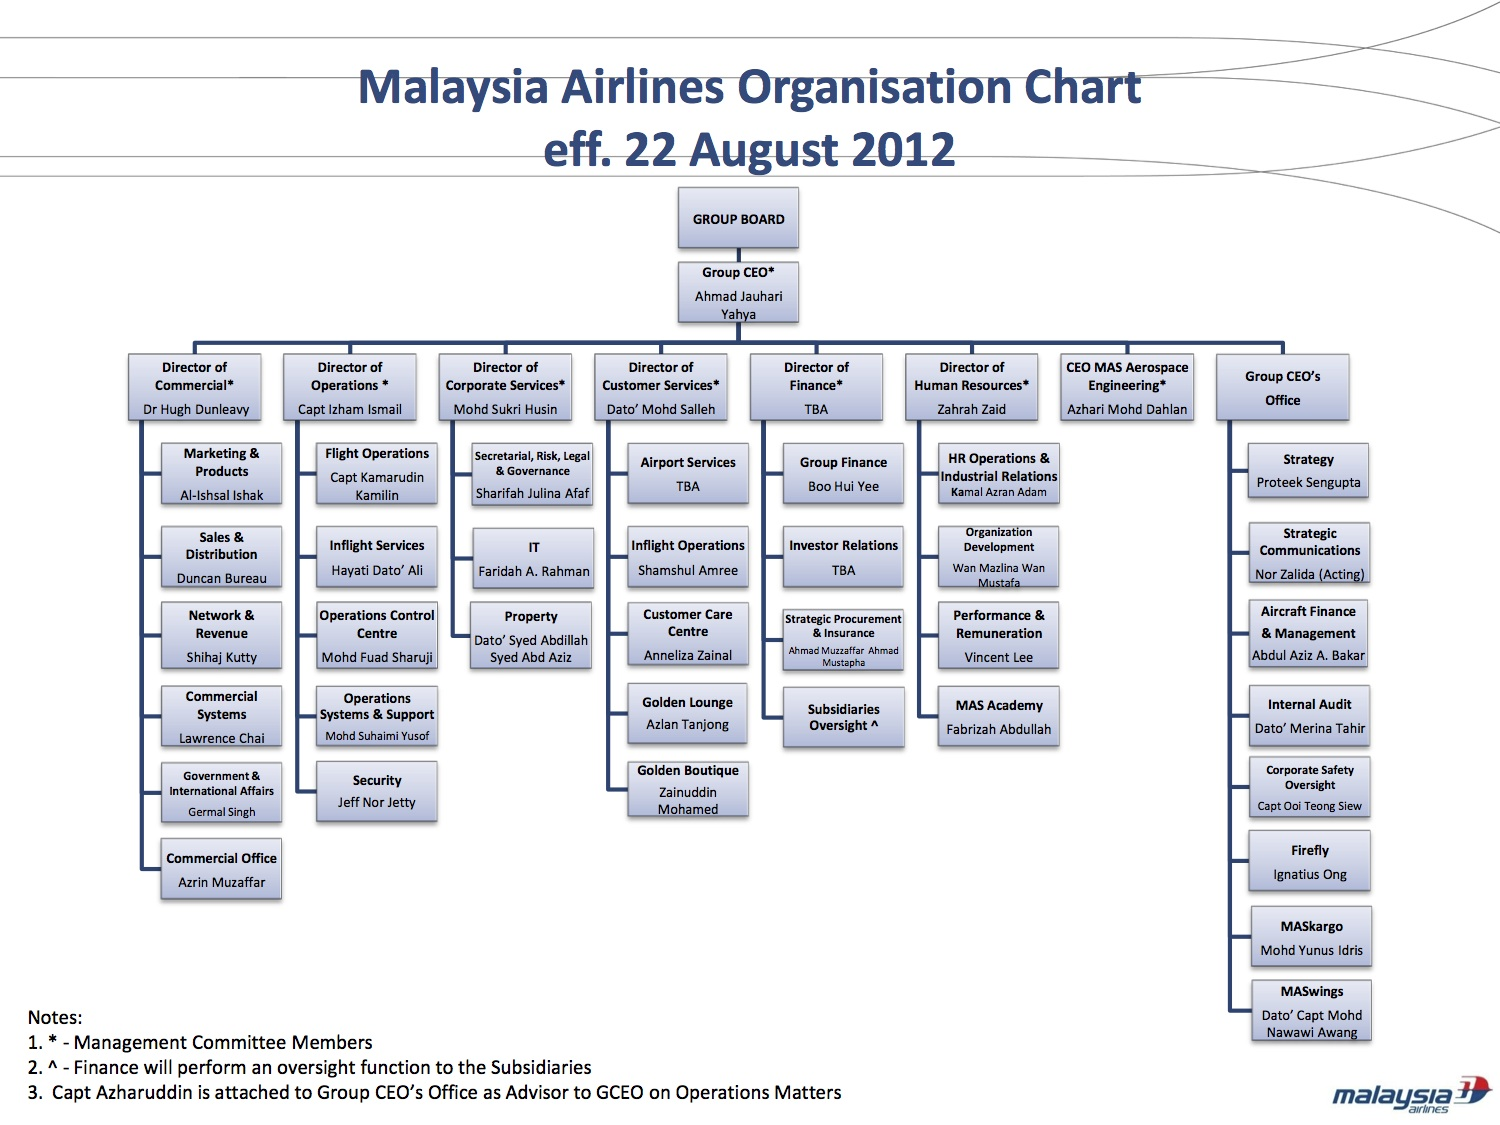 singapore airlines organizational structure This analysis focuses on the comparison between sia, emirates and ba on the basis of their cost structure, strategy and strategic assets in addition, sia and emirates are also competing on their.